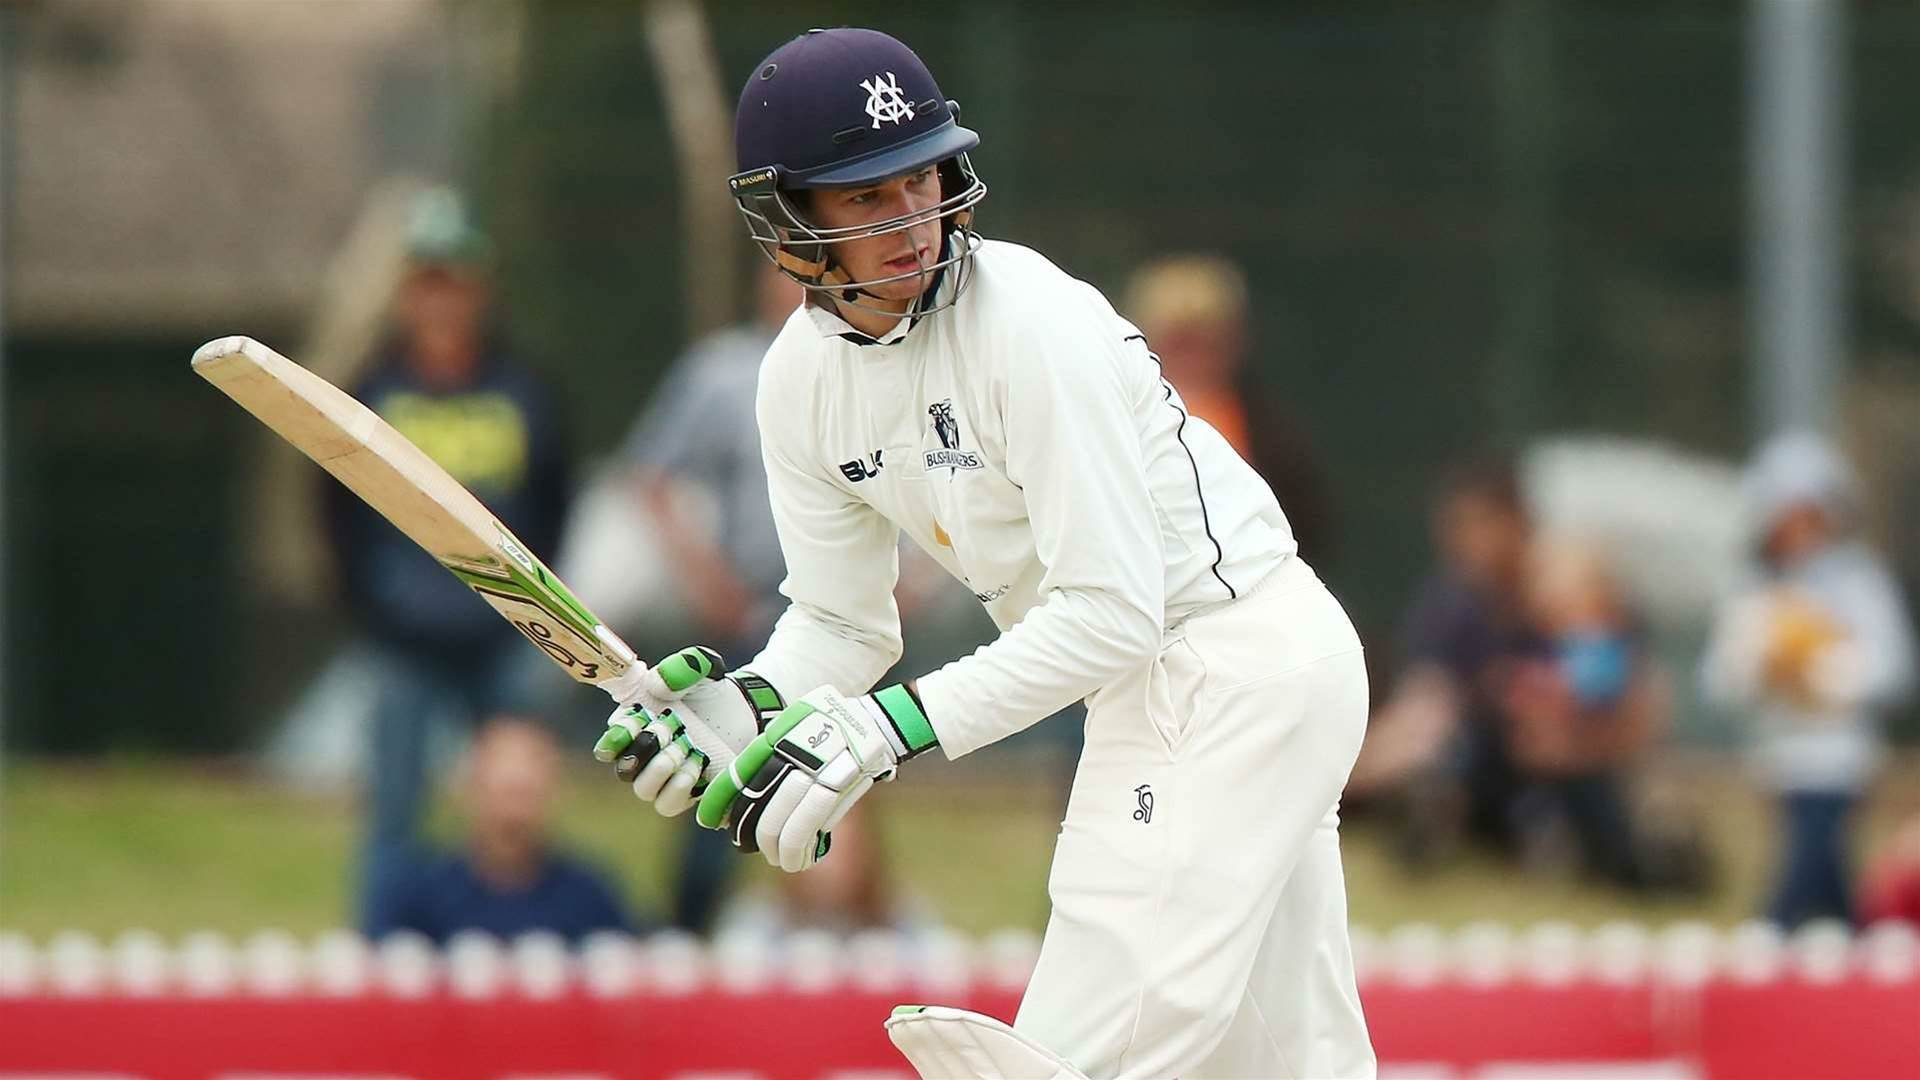 The curious case of the Victorian top-order batsman